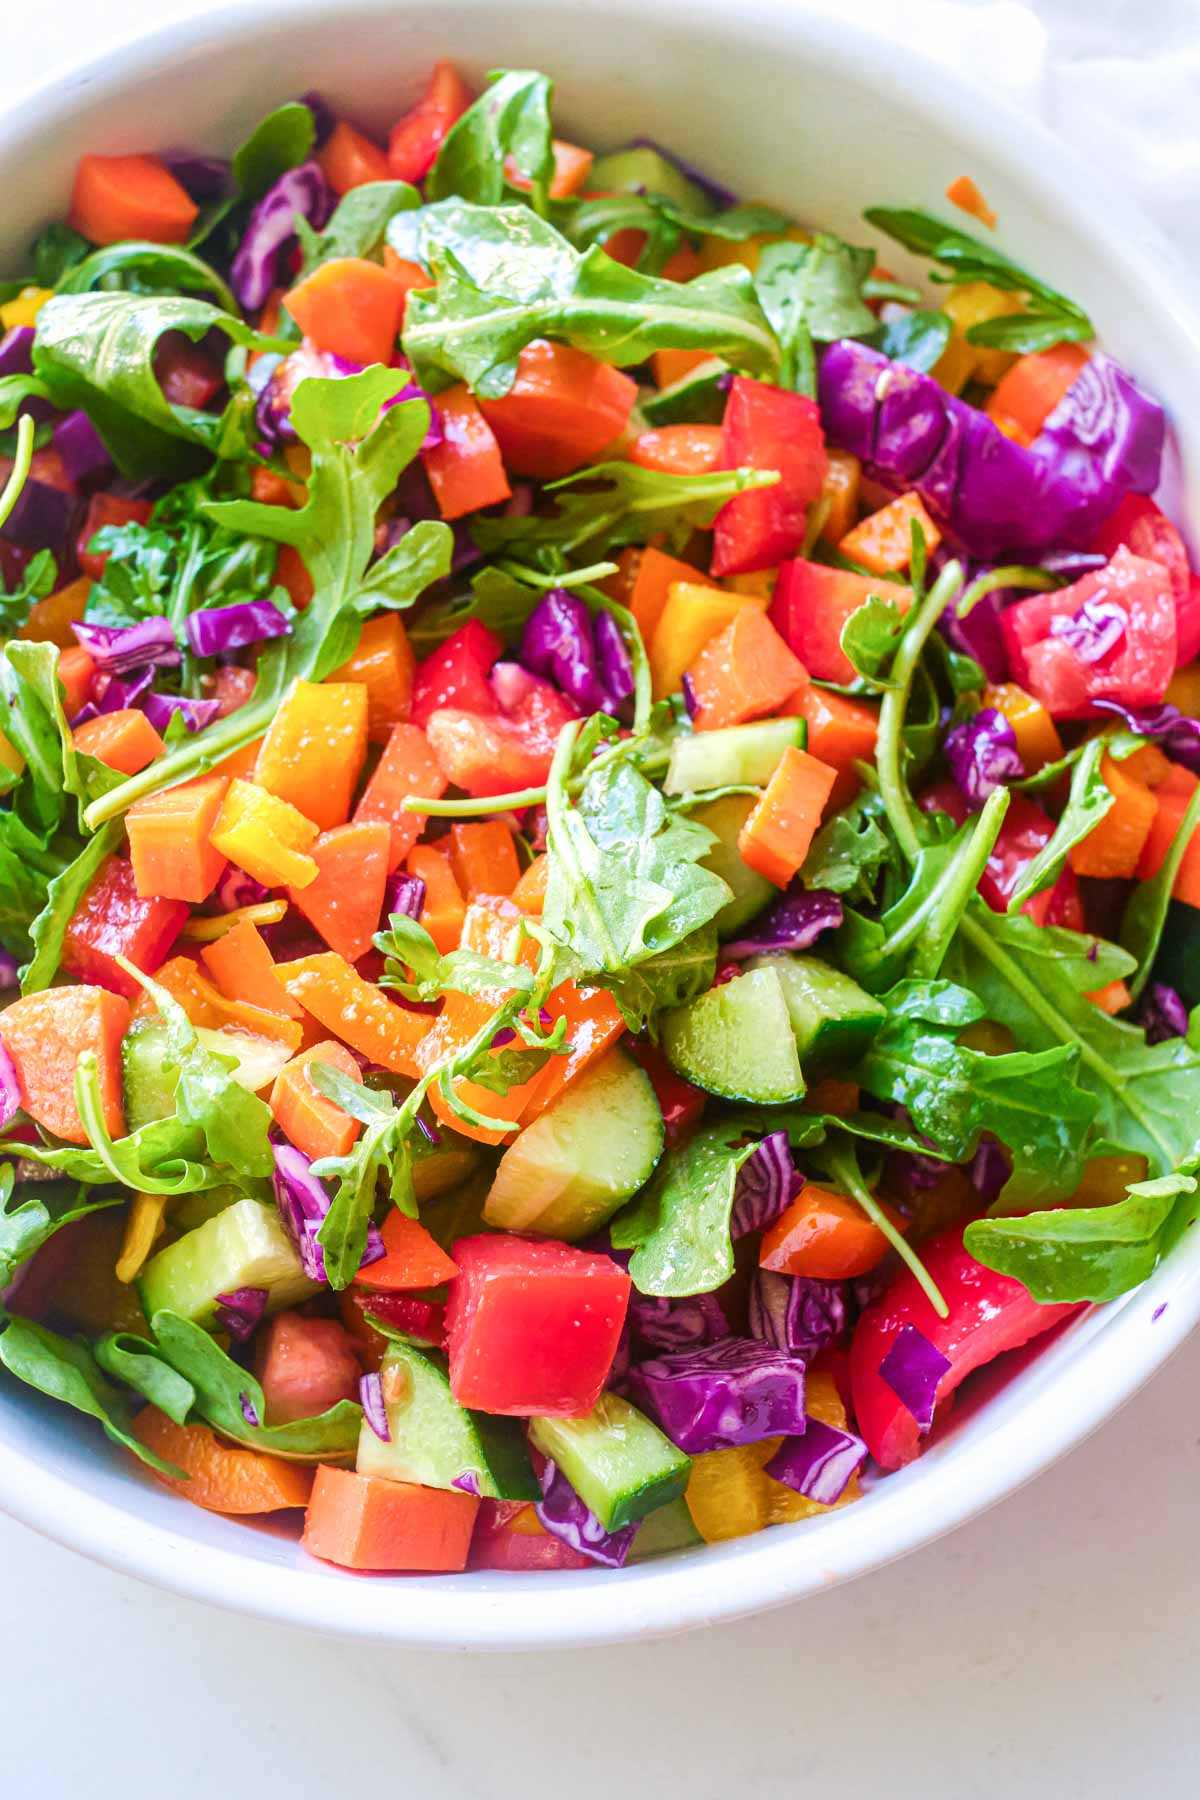 close up of a colorful chopped salad in a bowl on a table